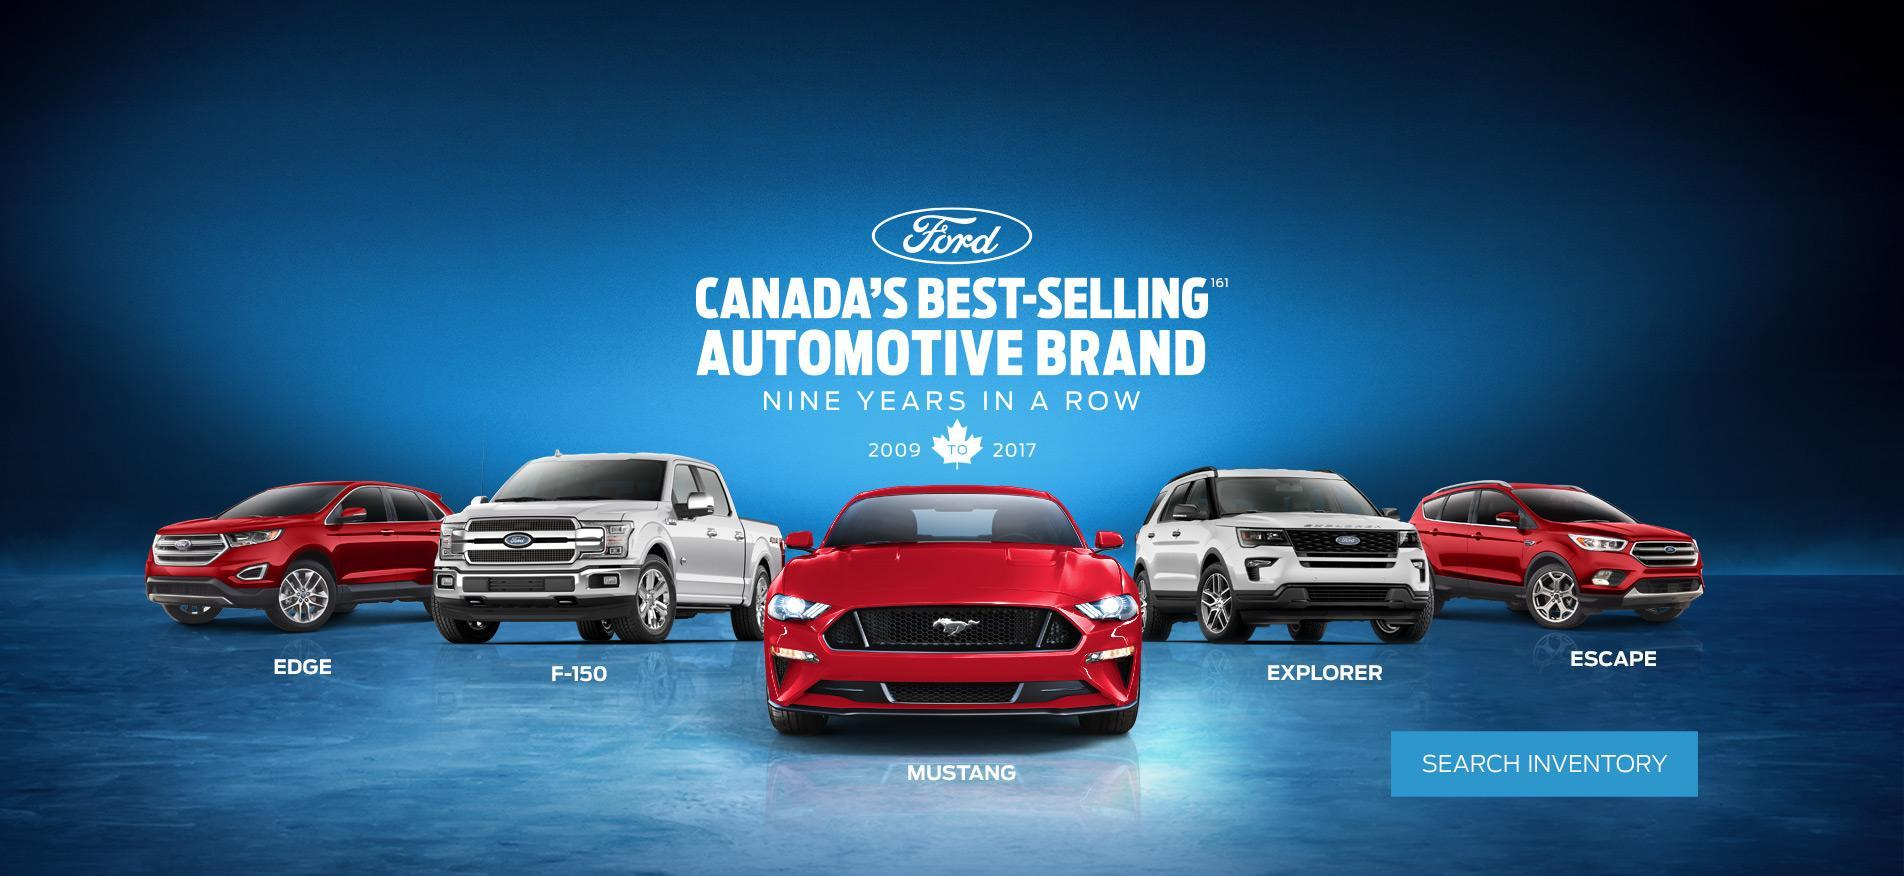 Canada's Best Selling Automotive Brand